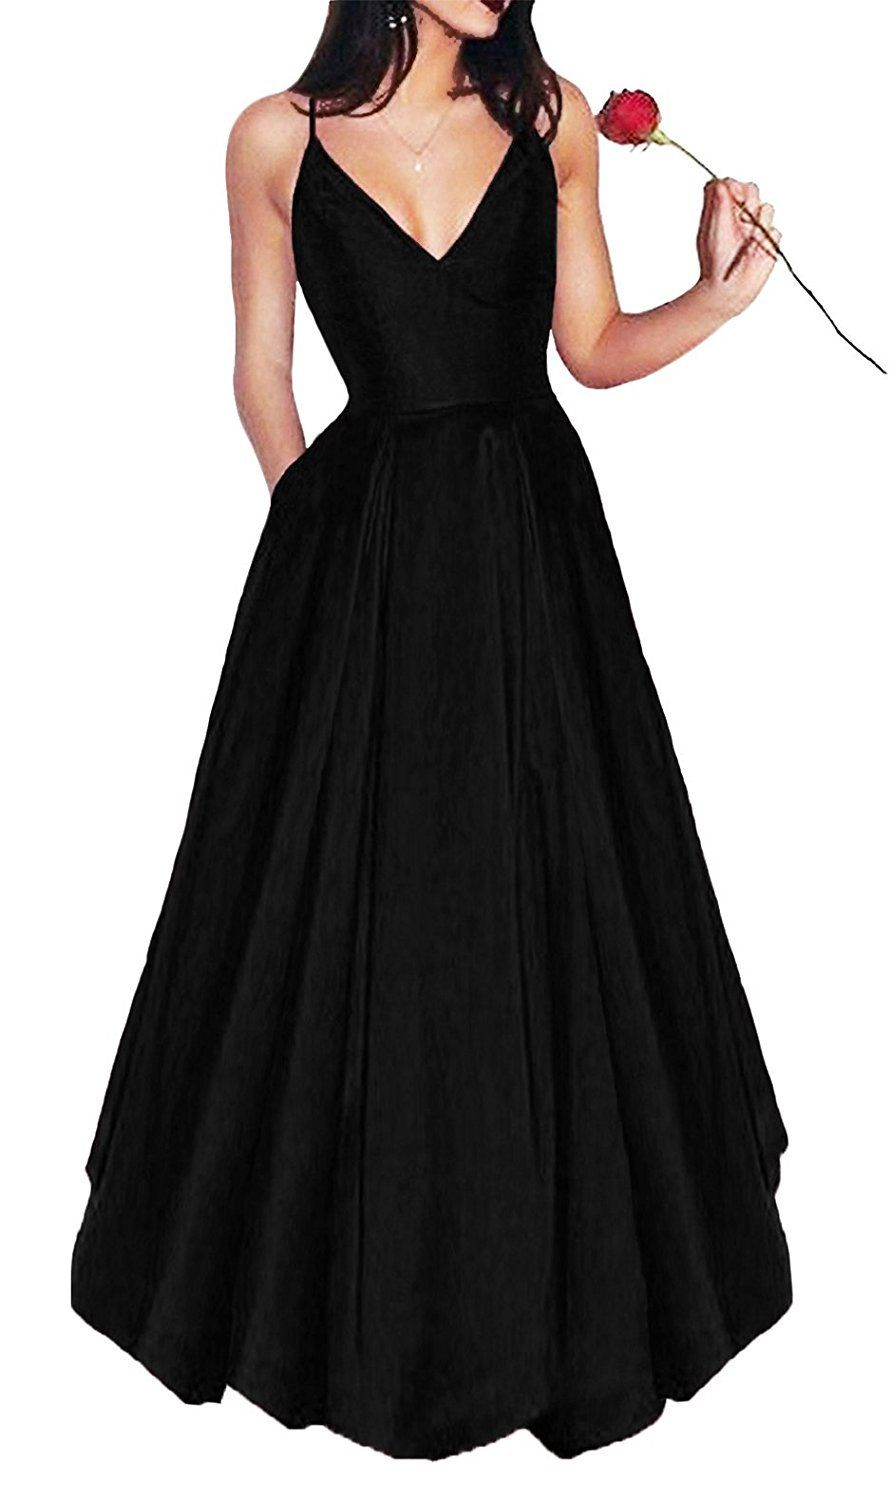 030c55e81fa1 Bonnie Womens Vneck Homecoming Dress 2017 Long Spaghetti Straps Satin Prom  Party Dresses with Pockets BS037   Find out more about the great product at  the ...